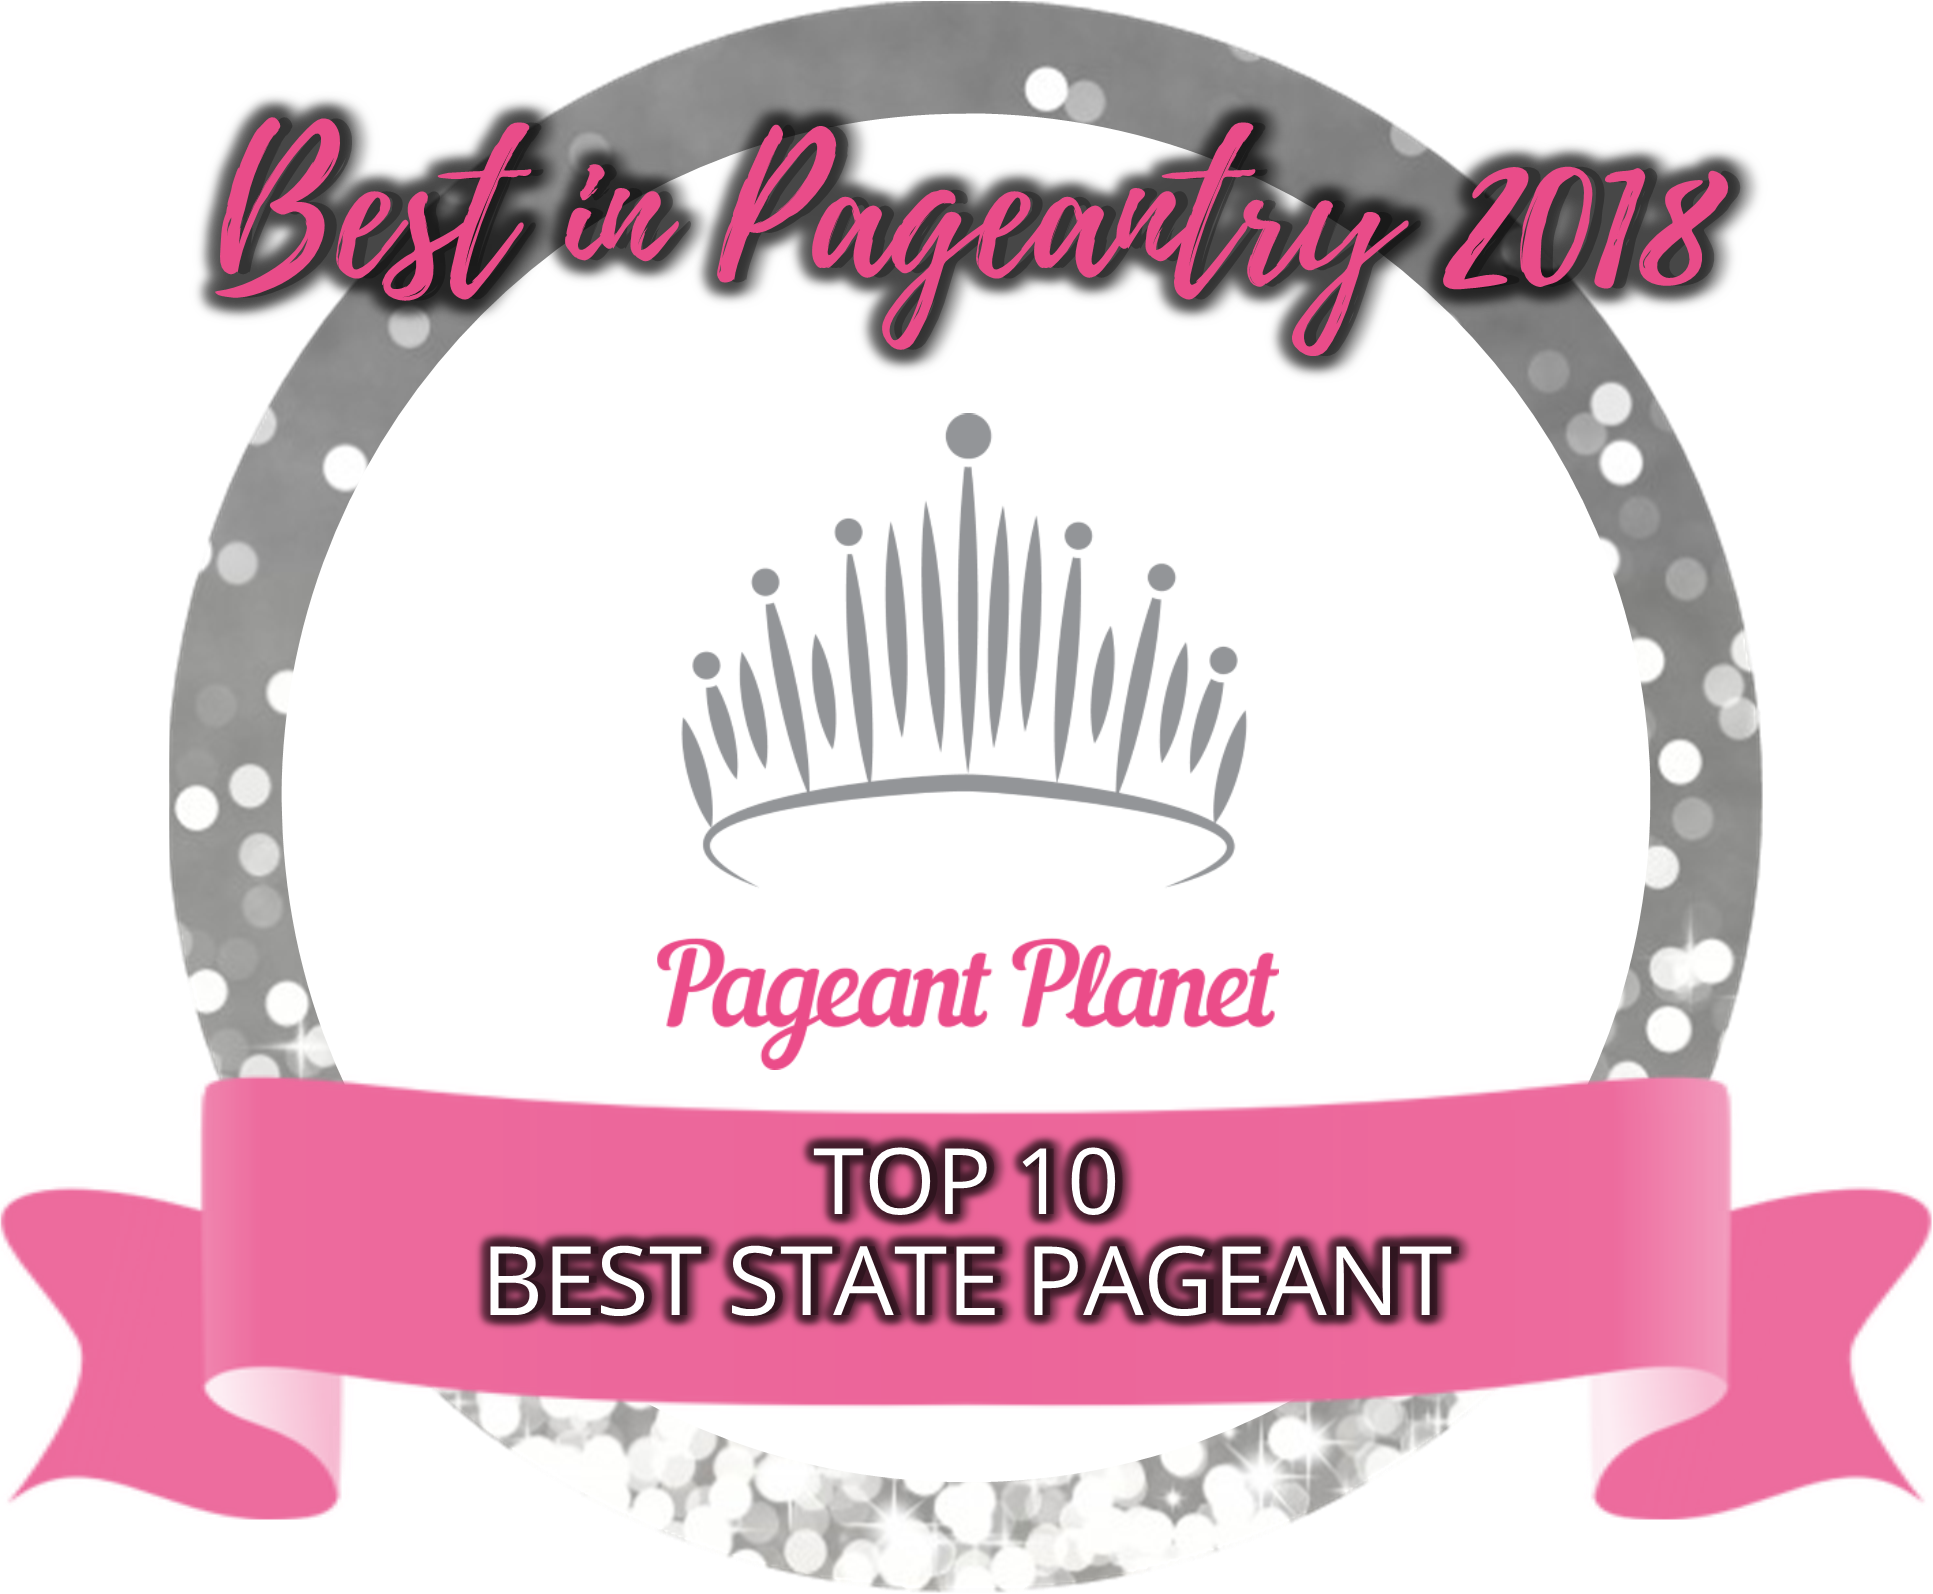 Top 10 Best State Pageant of 2018